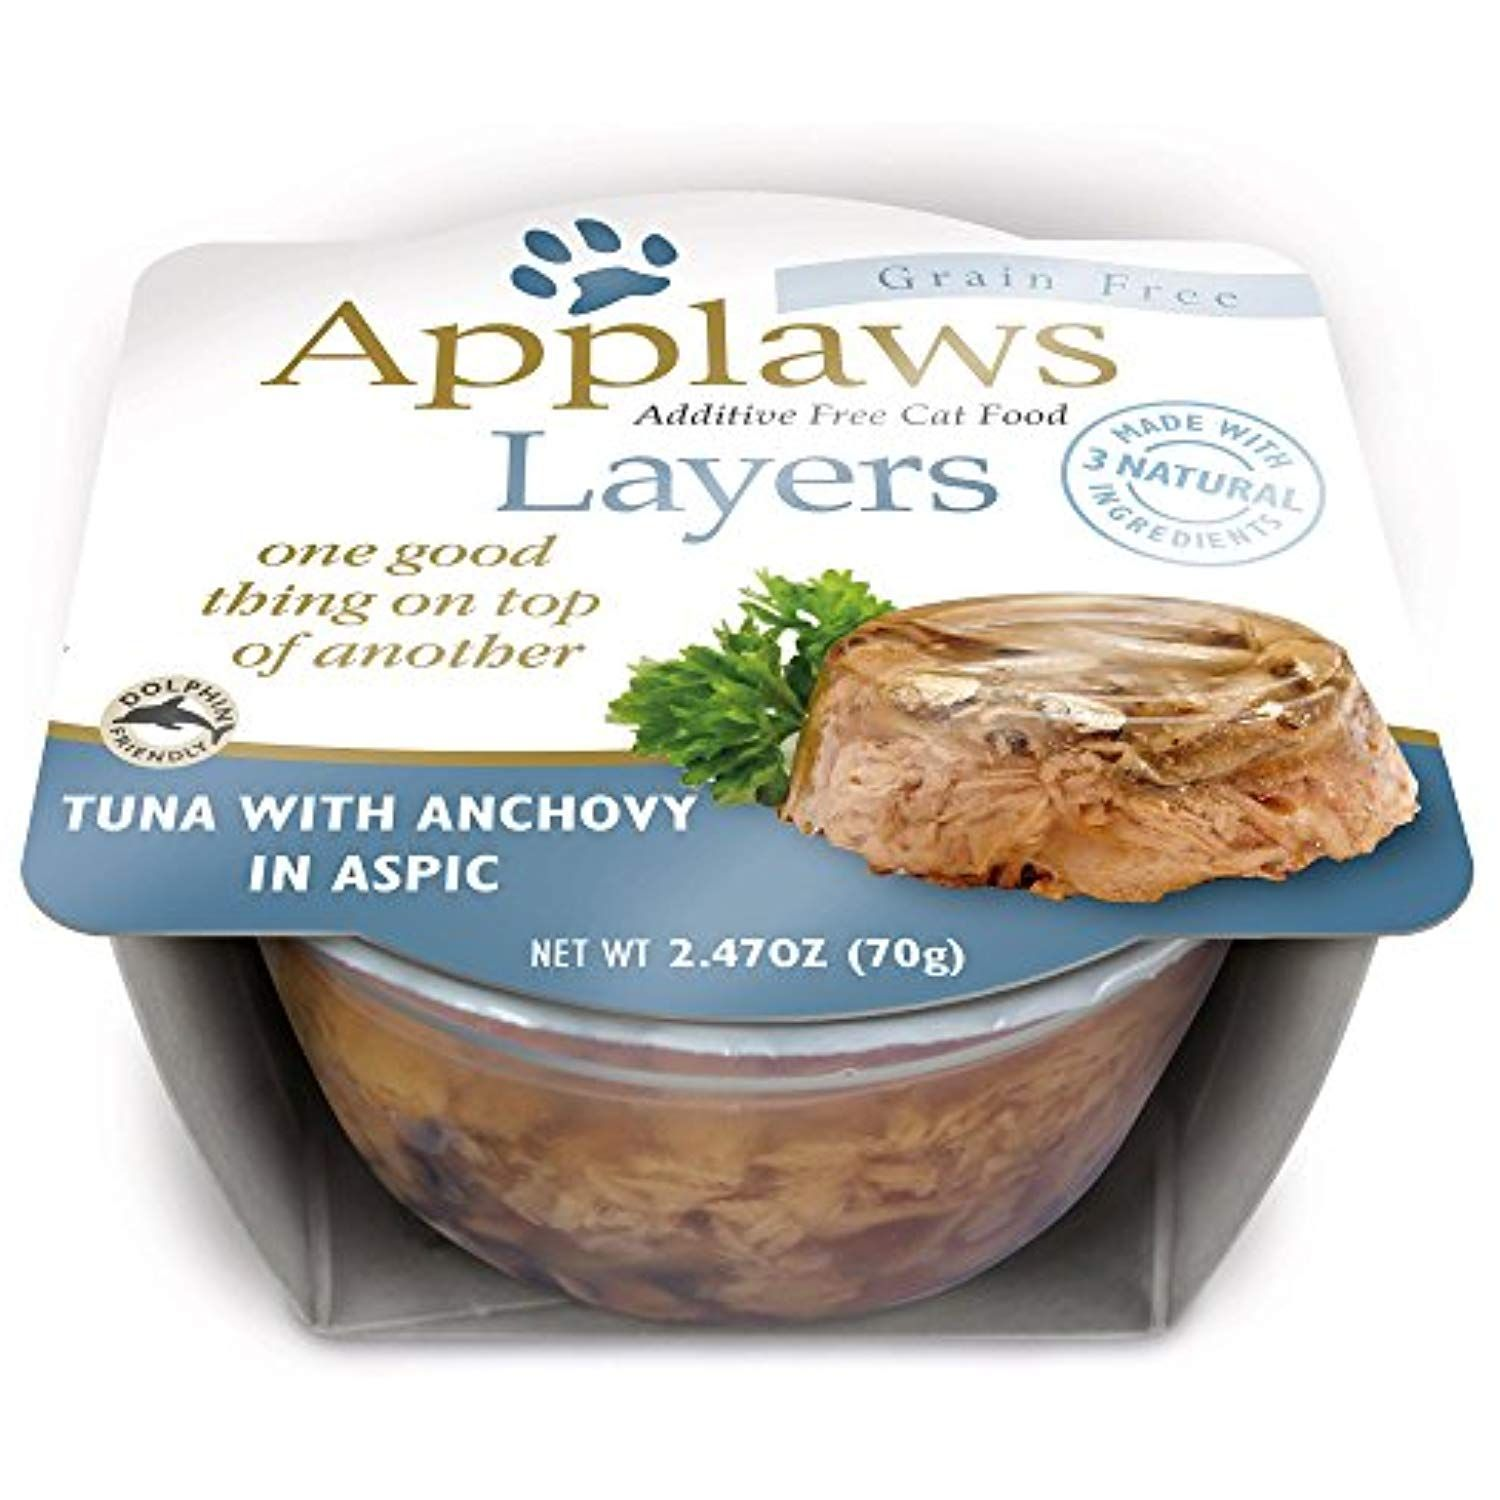 Tuna Anchovy Layers 12 2 47 Oz Mpm Products Usa Applaws Pet Applaws Cat Can Food Read More At The Image Link Food Grain Free Cat Food Free Cat Food